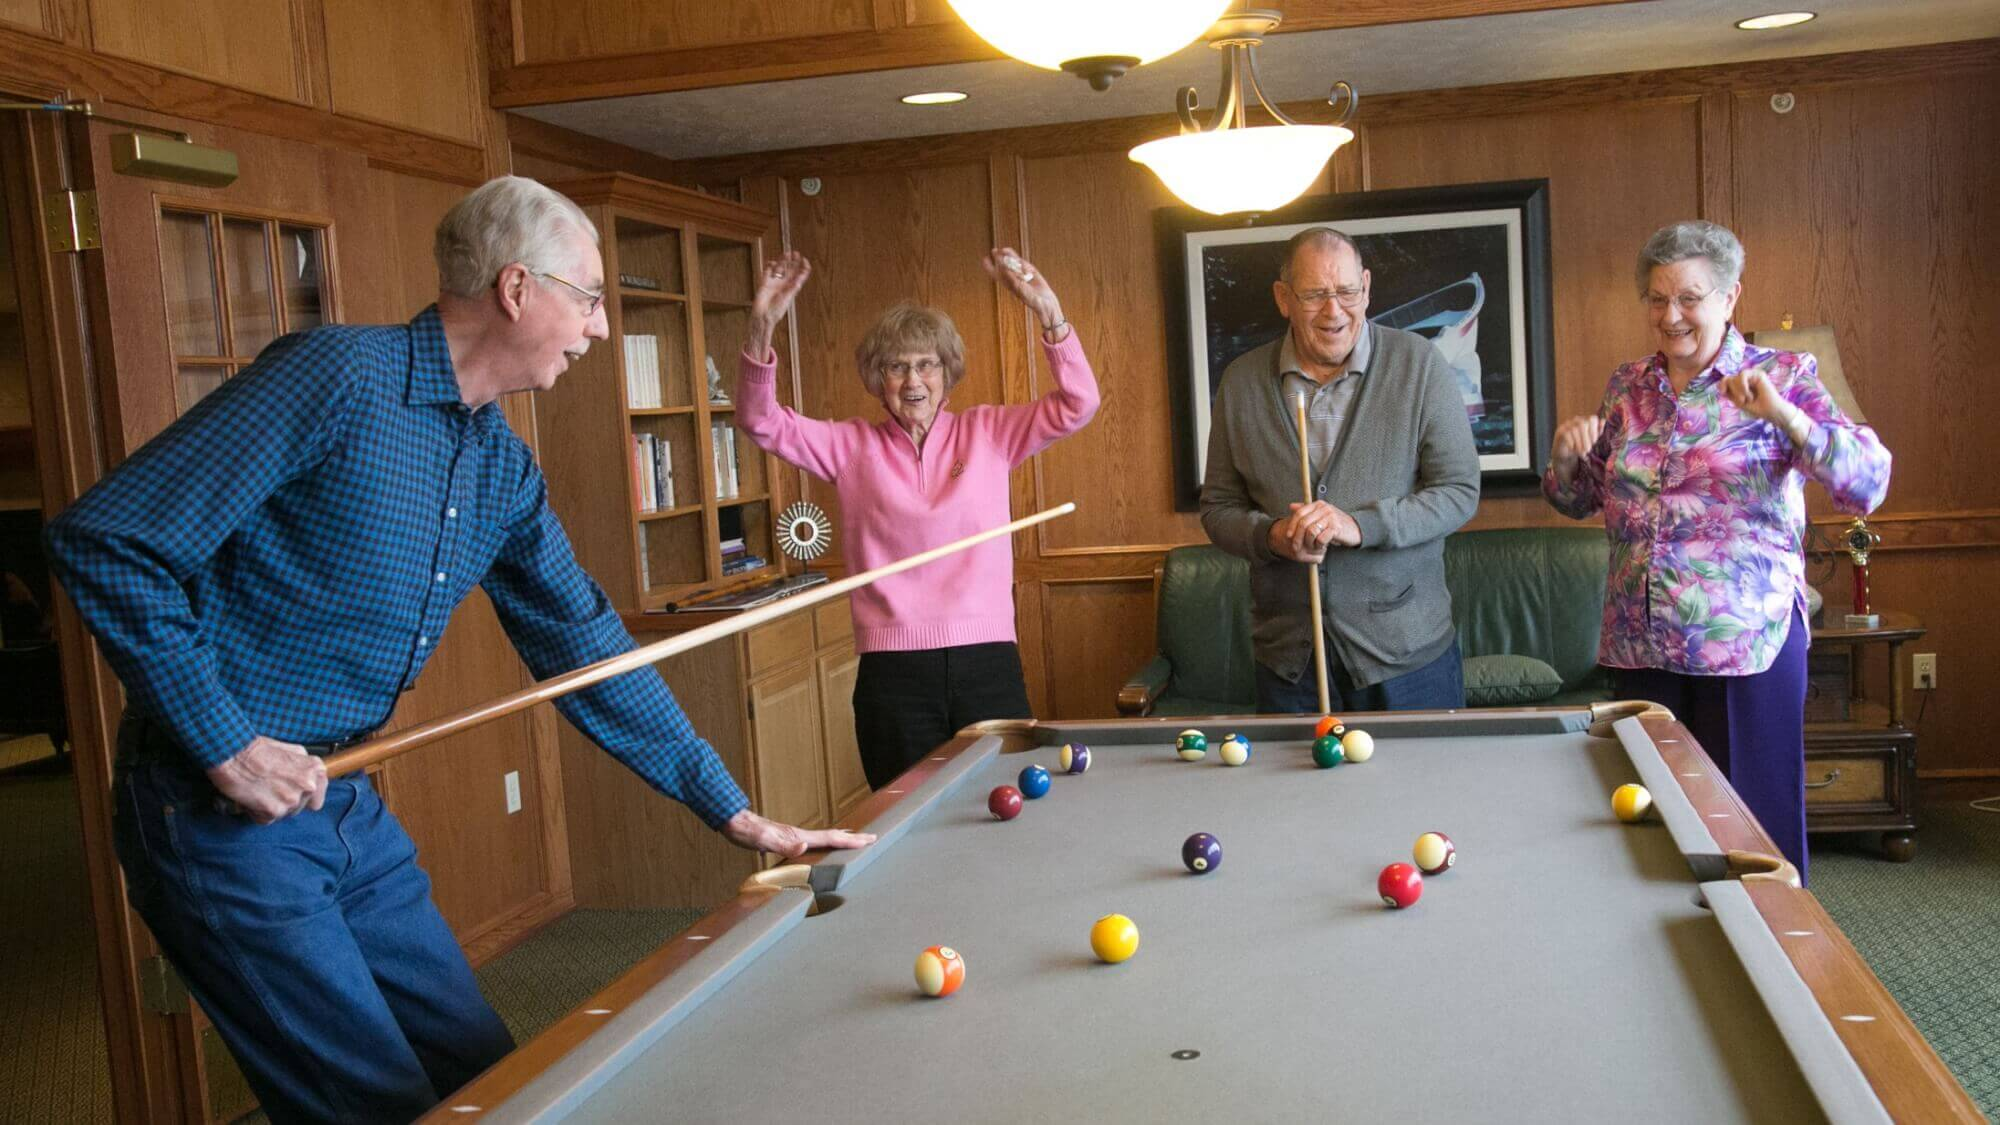 Residents enjoy a game of pool in the billiards room at Maple Ridge.